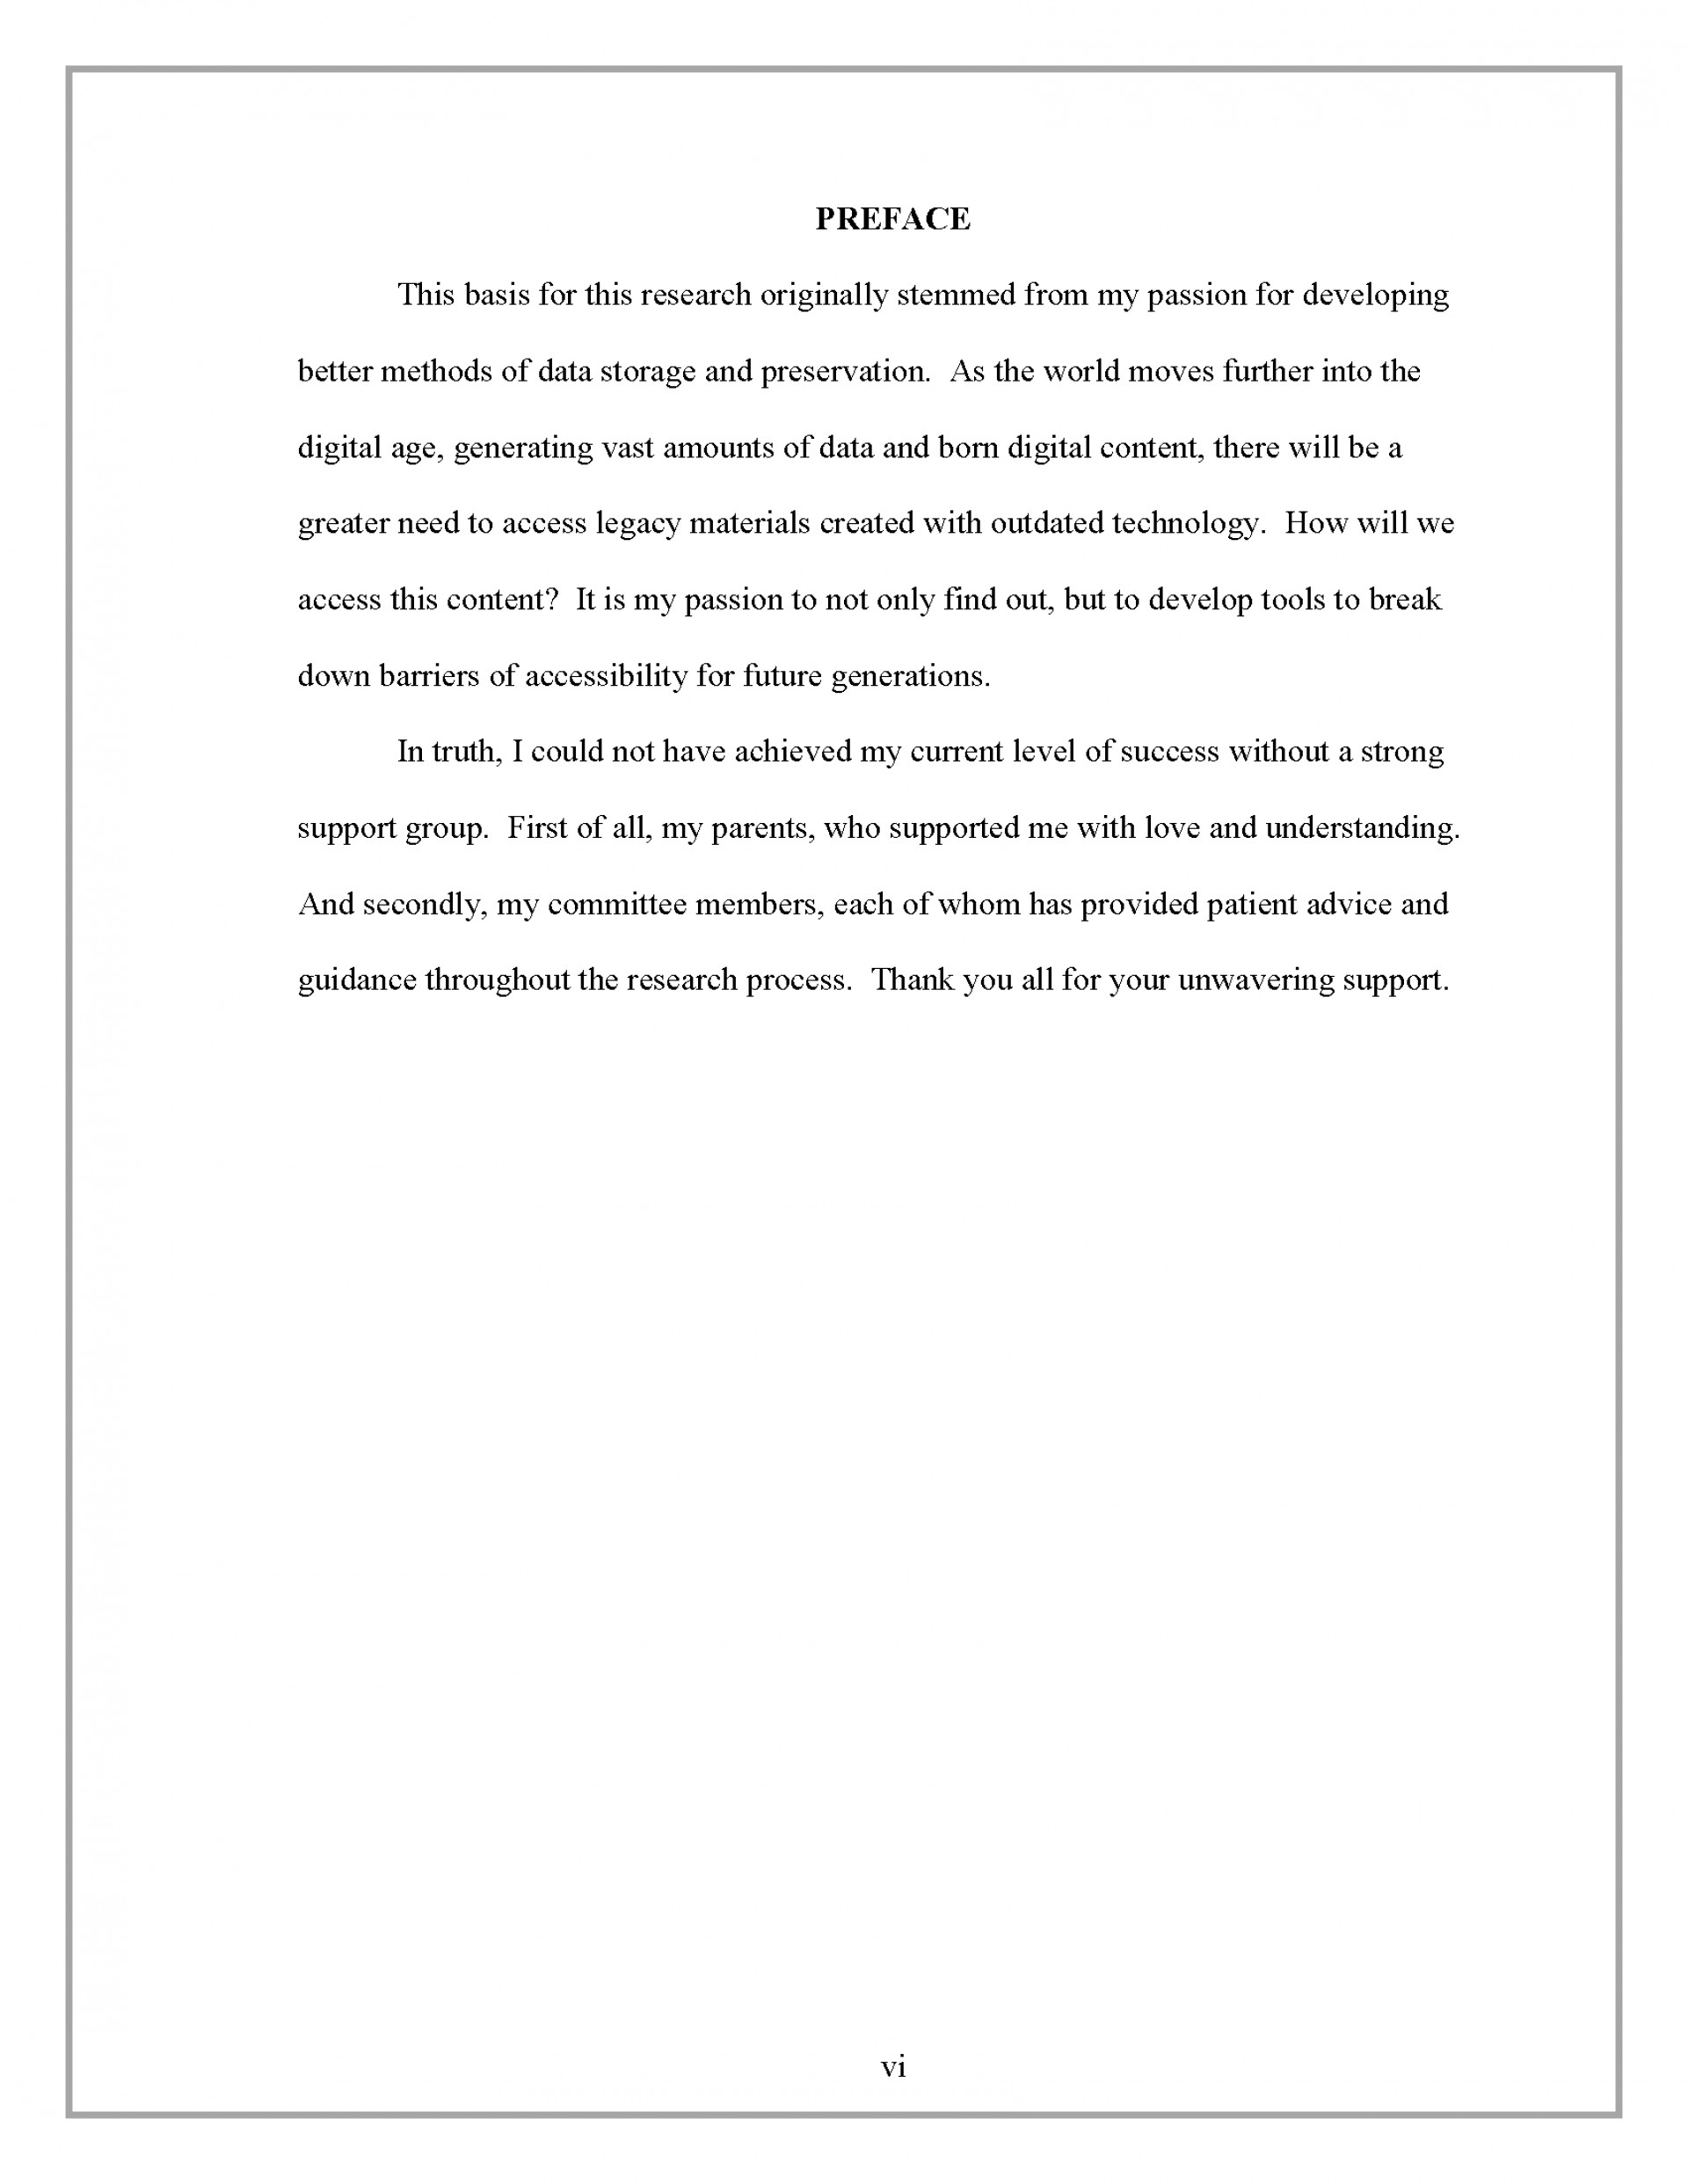 018 Thesis For Research Paper Preface Border Wonderful A Statement Generator Career On Schizophrenia 1920